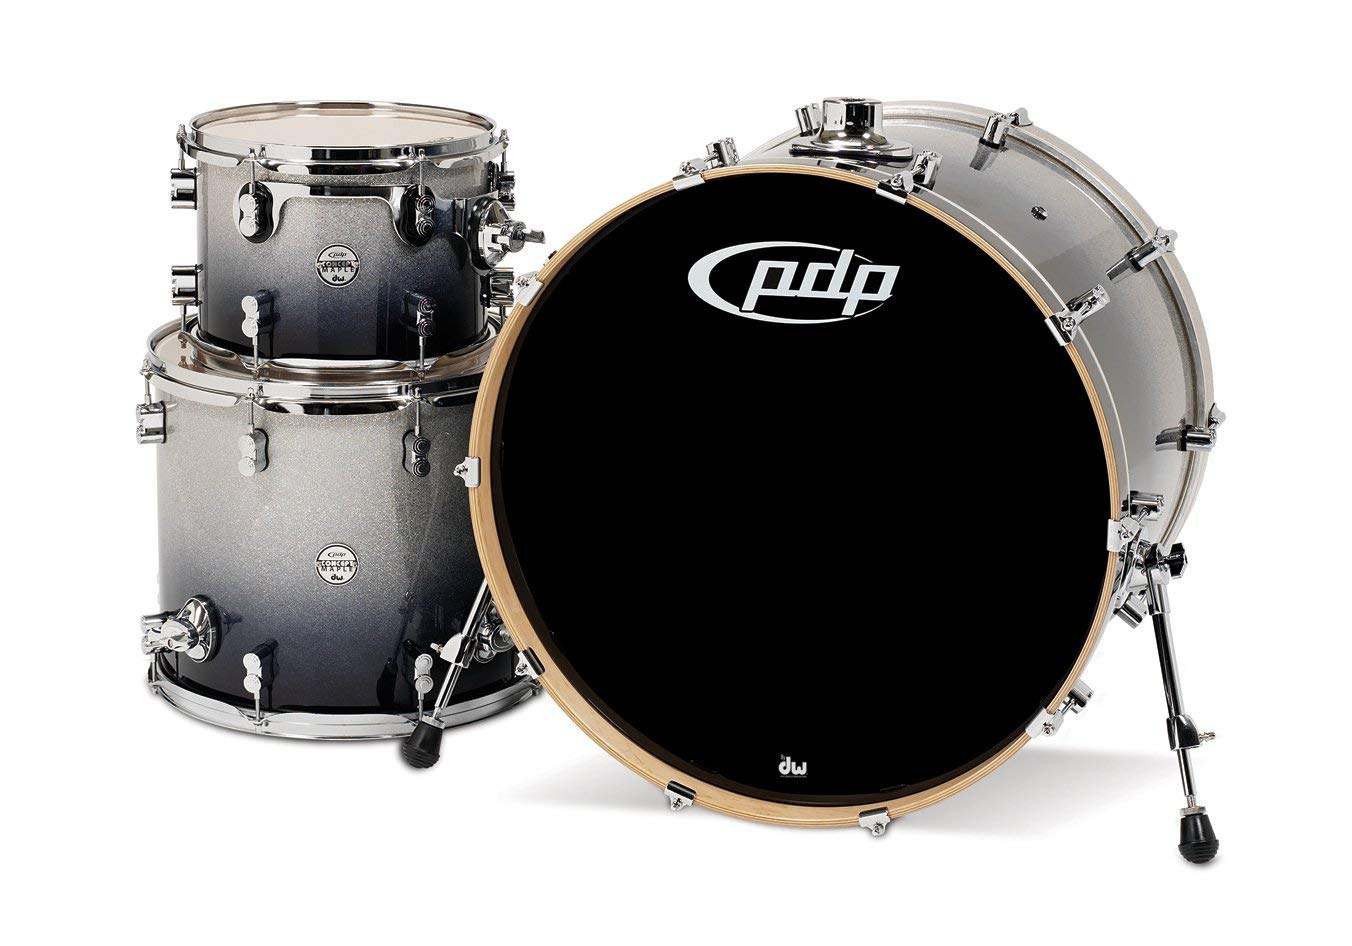 Pacific Drums PDCM2413SB 3-Piece Drumset with Chrome Hardware - Silver to Black Fade